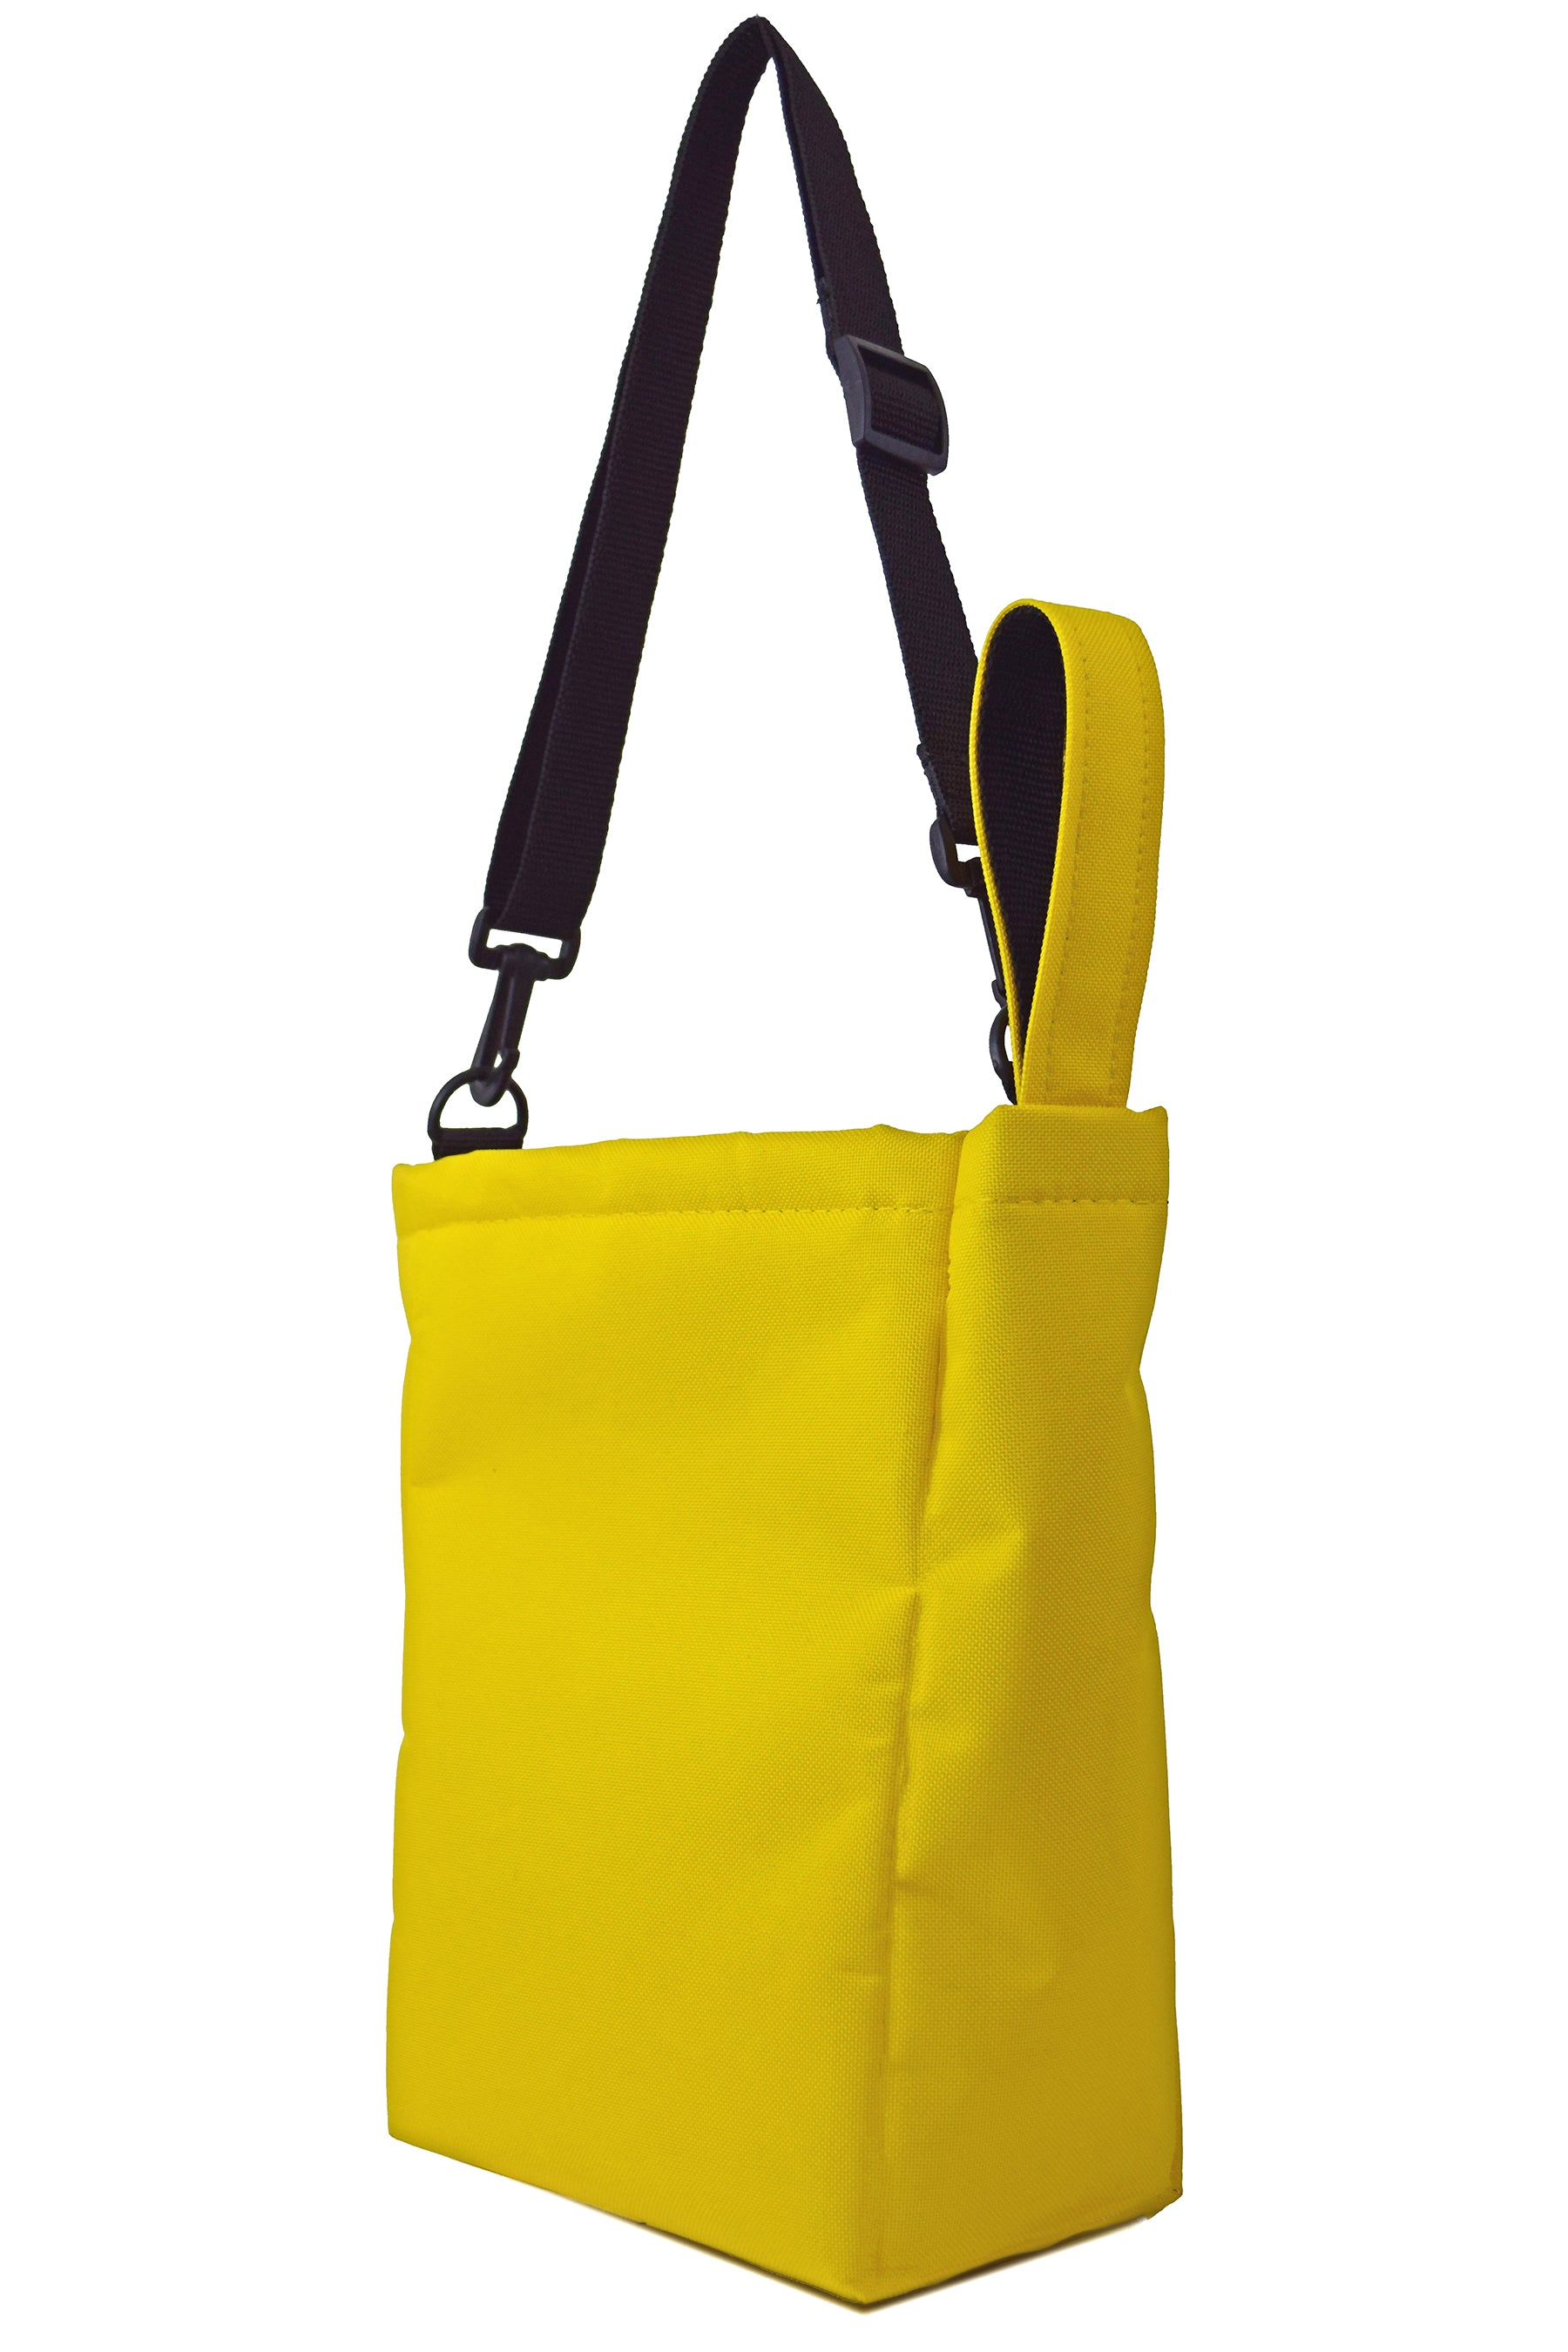 UTILITY Pouch Grab Bag | YELLOW